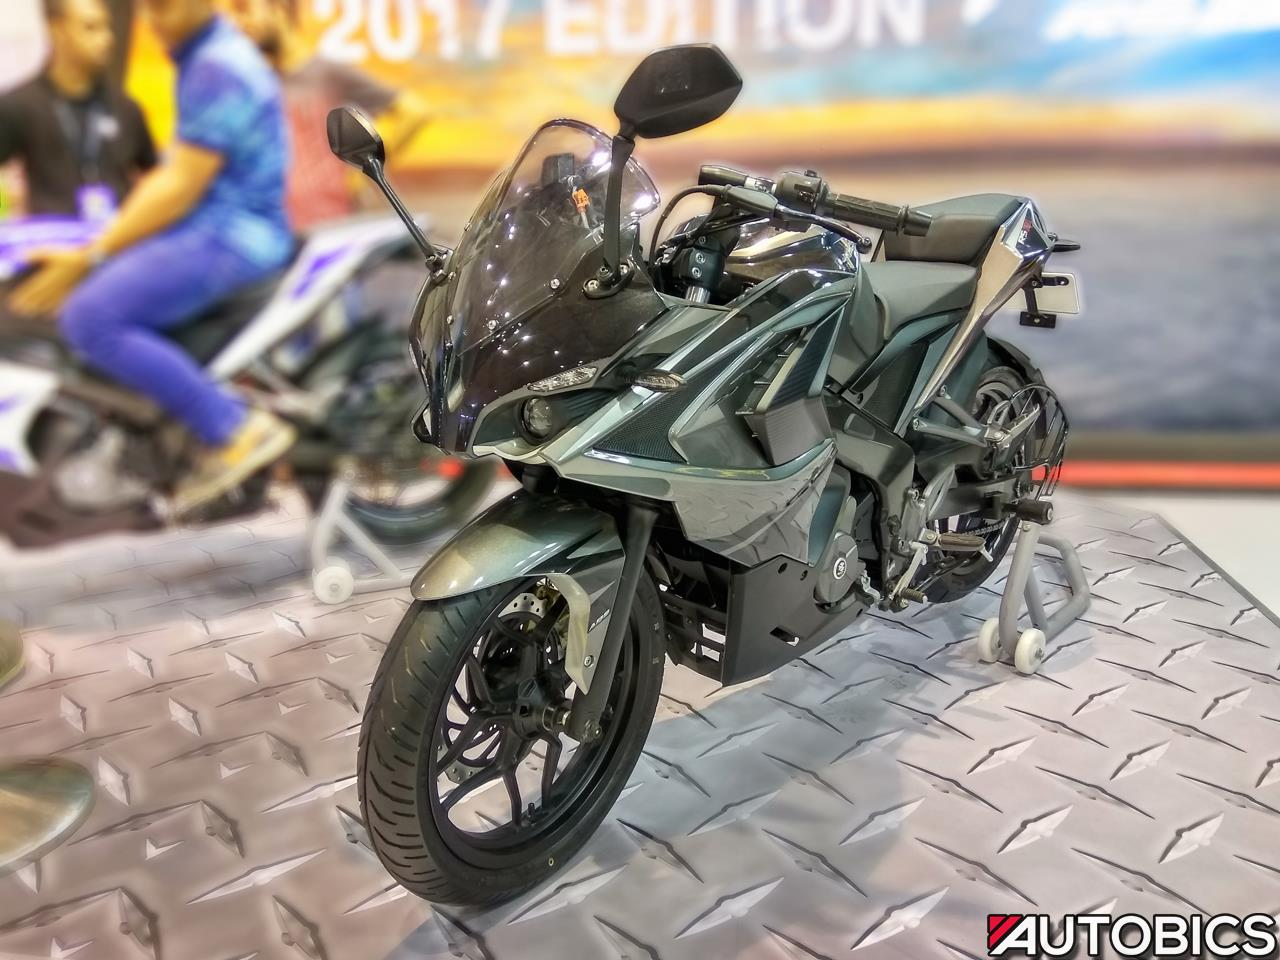 2017 bajaj pulsar rs200 launched in india prices start at rs 1 21 881 autobics. Black Bedroom Furniture Sets. Home Design Ideas